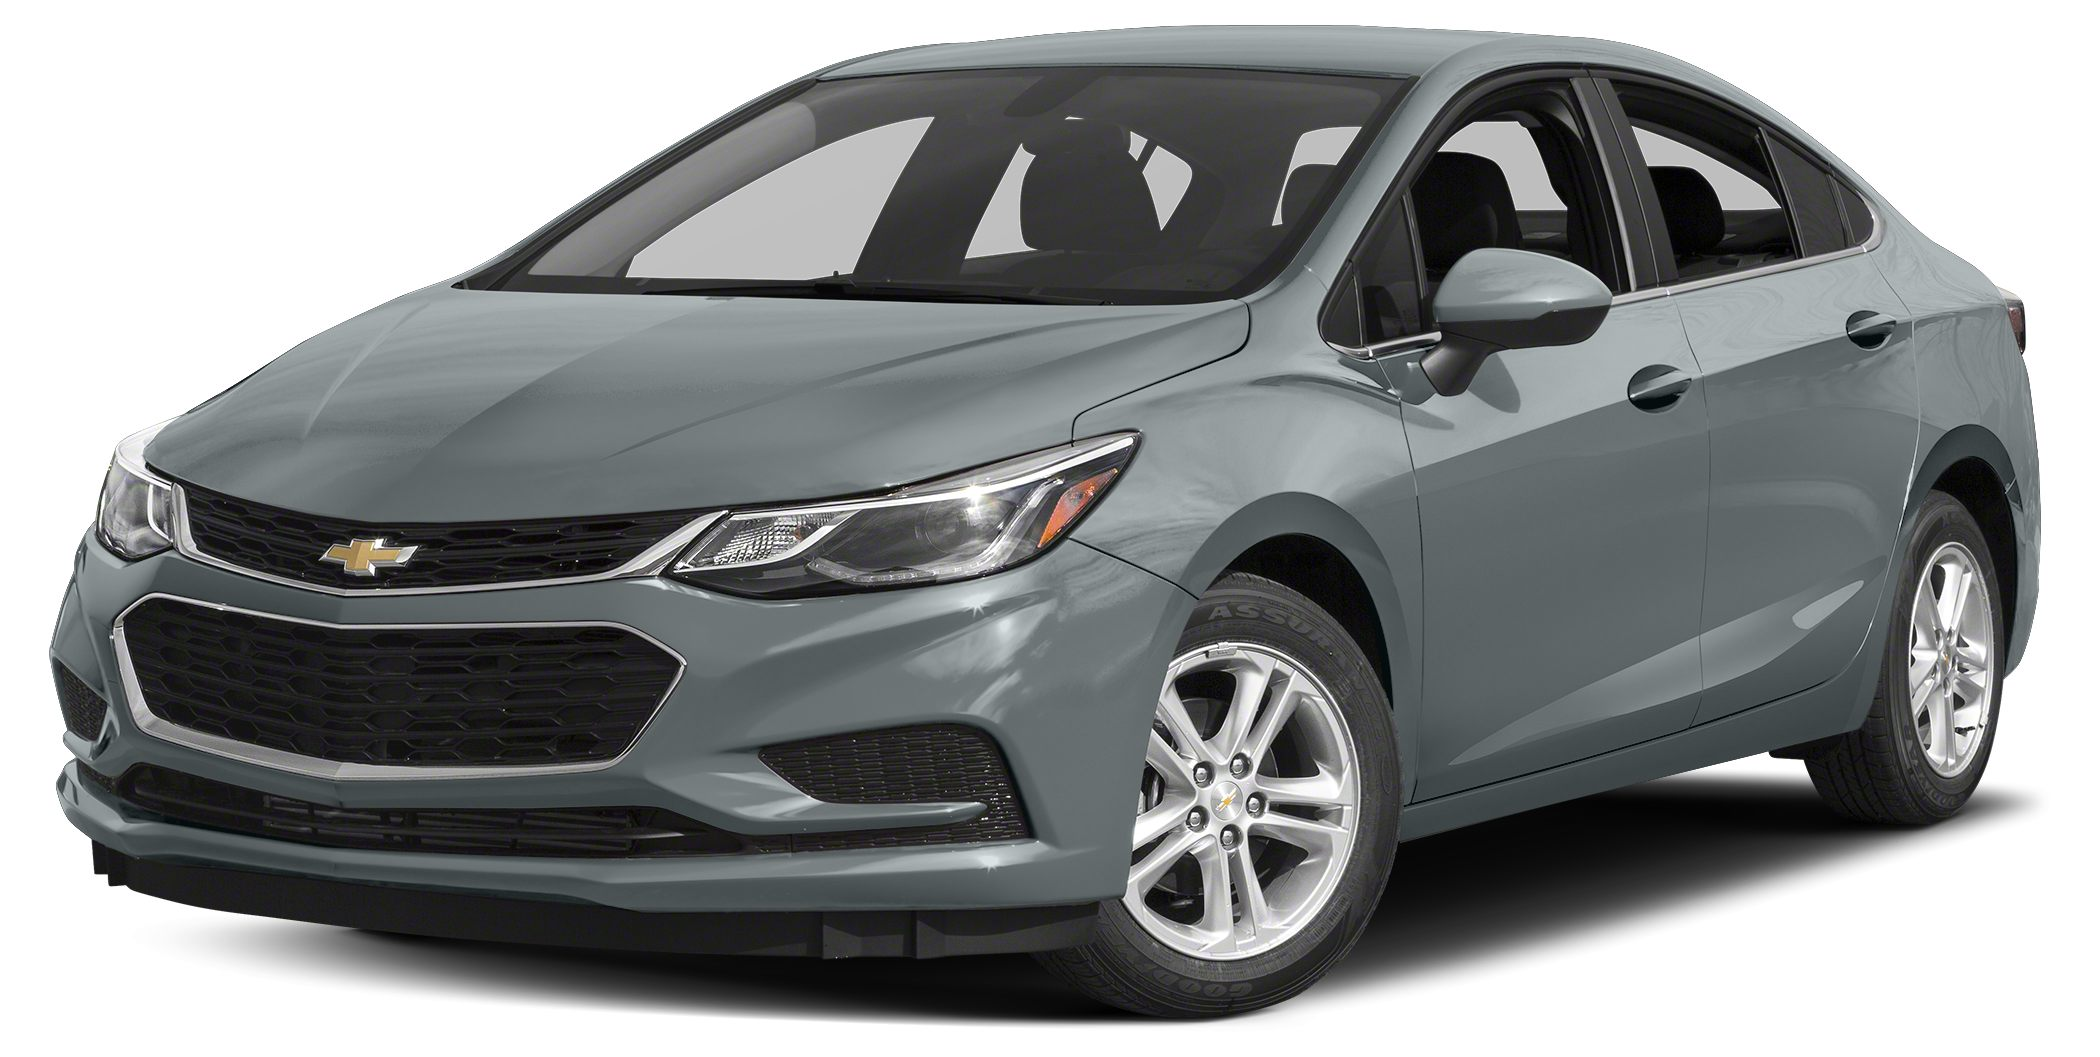 2016 Chevrolet Cruze LT Youve never felt safer than when you cruise with anti-lock brakes a back